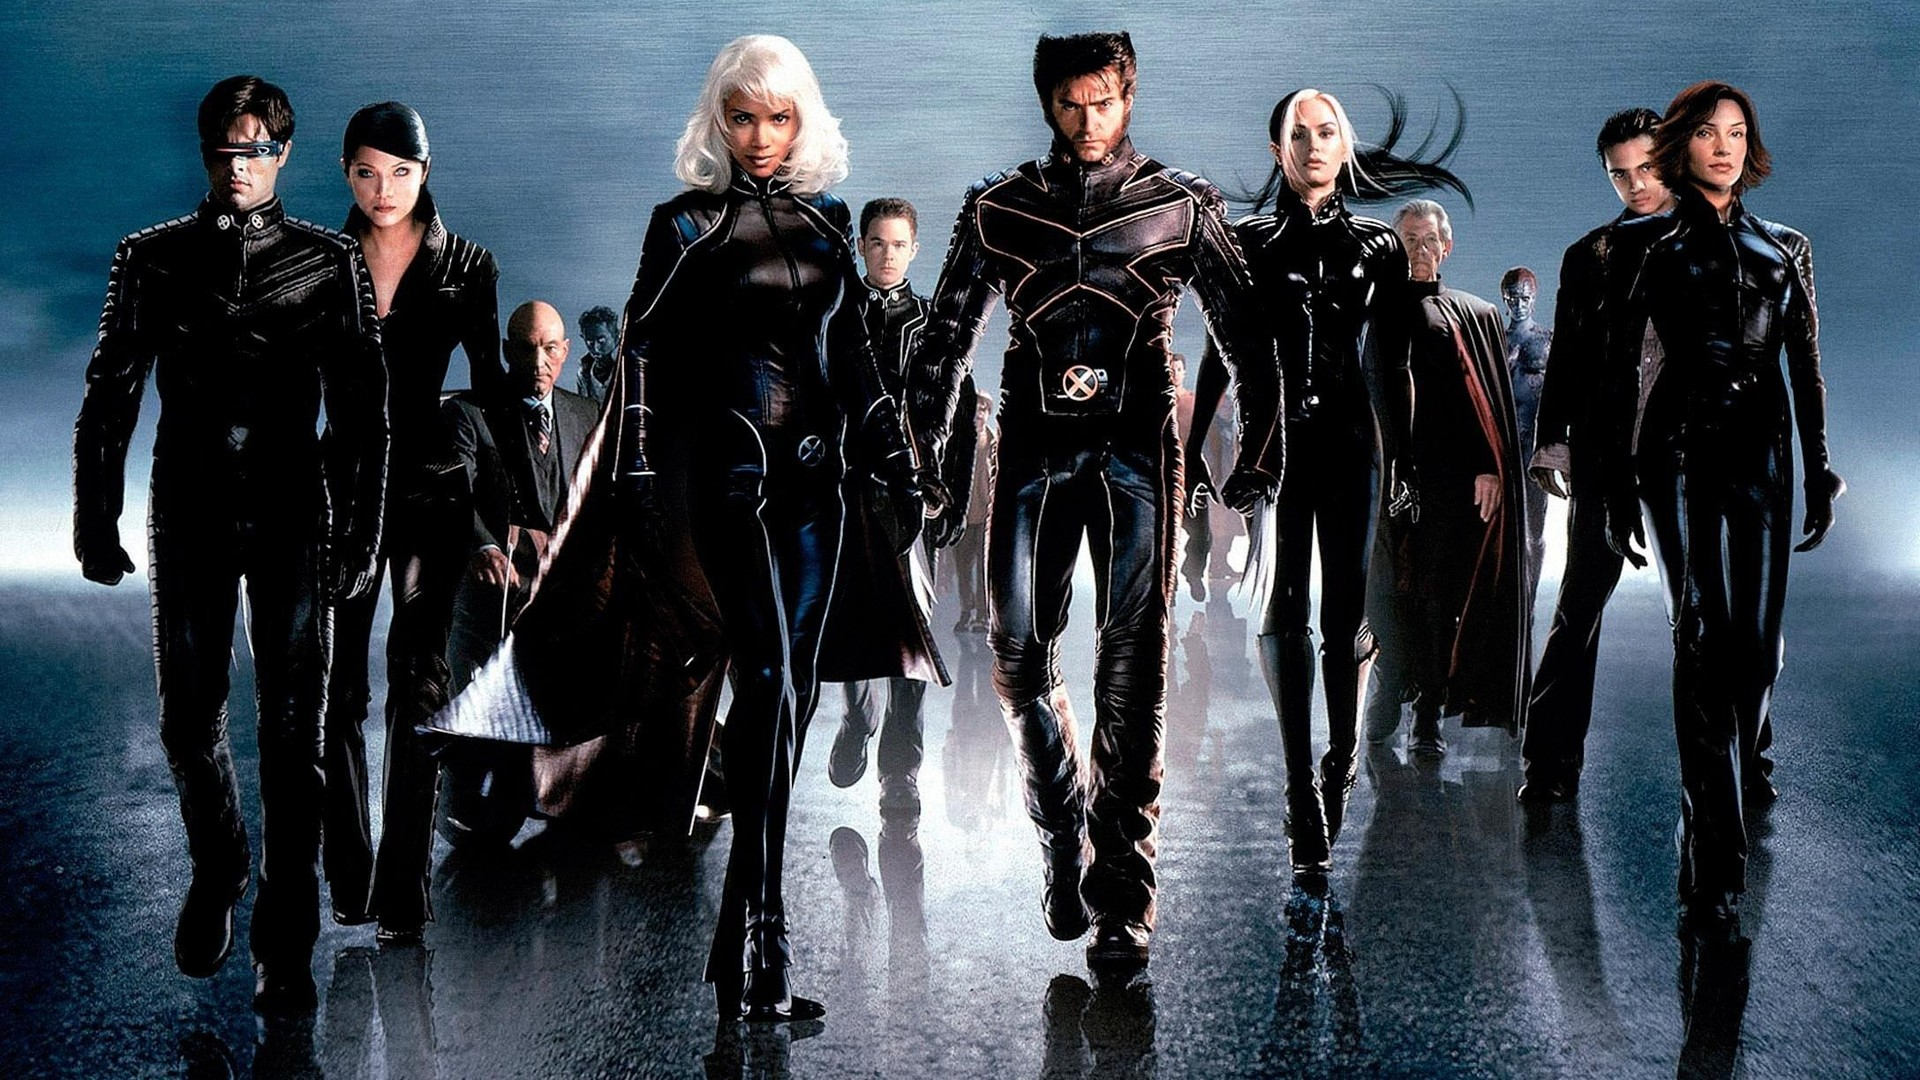 CofC Professors Comment on X-Men in Charleston X Men Characters